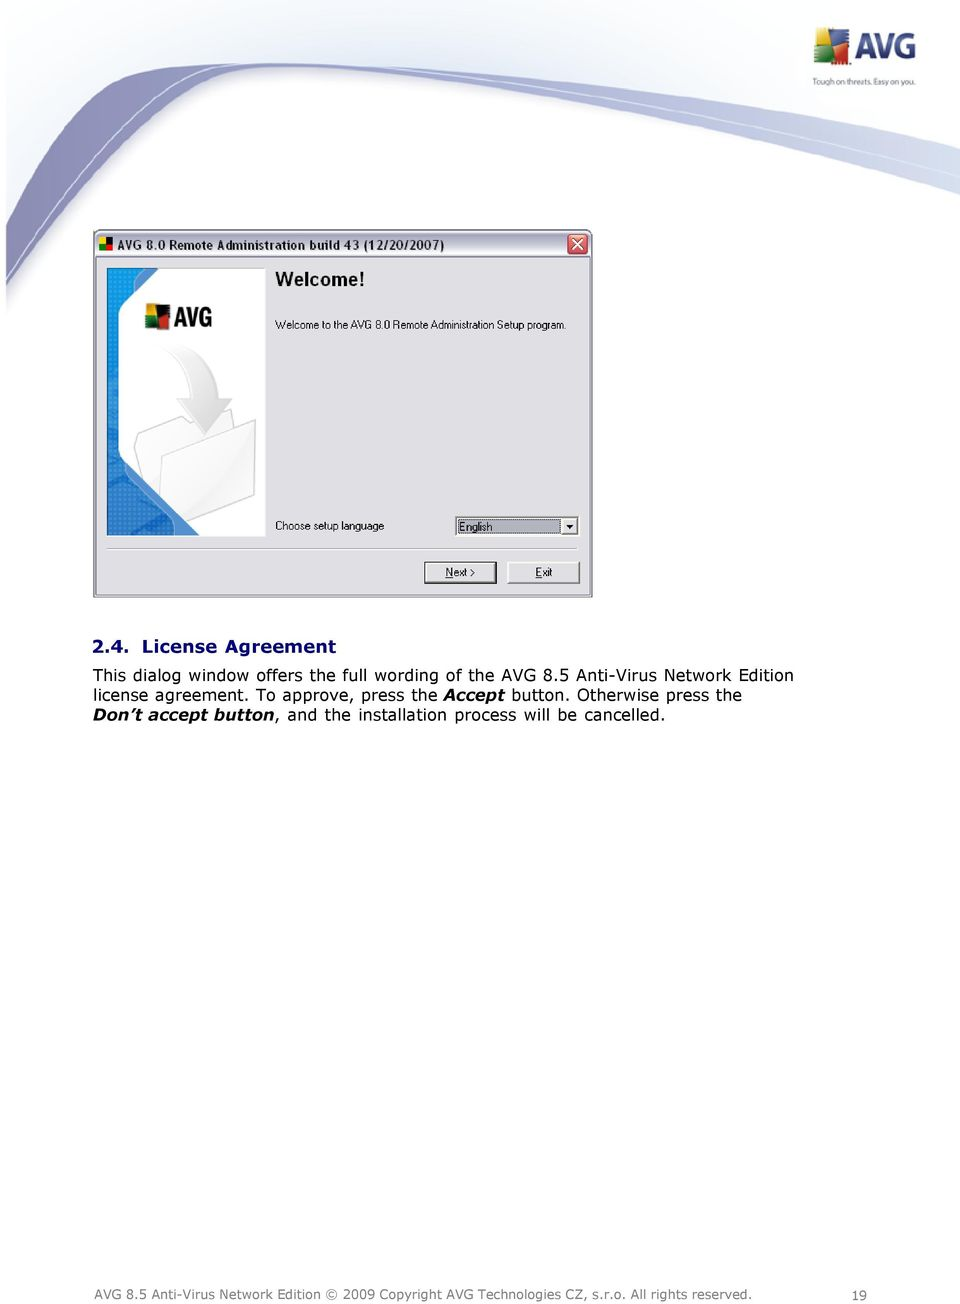 5 Anti-Virus Network Edition license agreement.